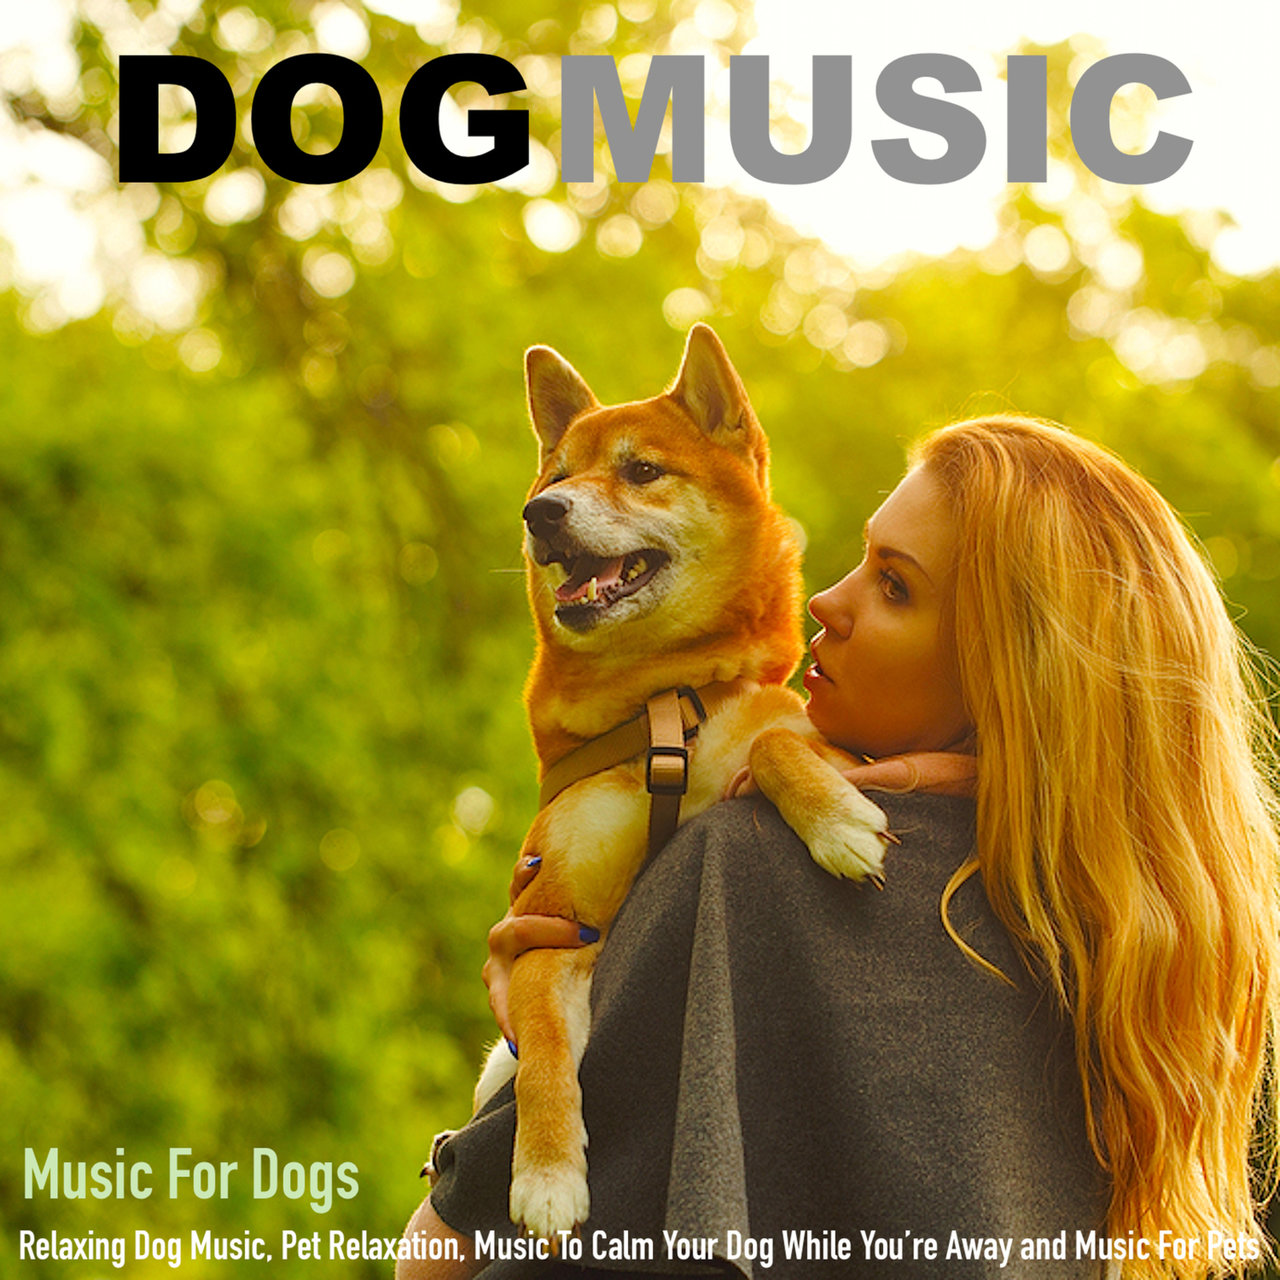 Stylish Music Ing Dog Music App Ing Dog Music 12 Hours Piano Music Dog Pet Music To Your Dog Listen To Music bark post Calming Dog Music